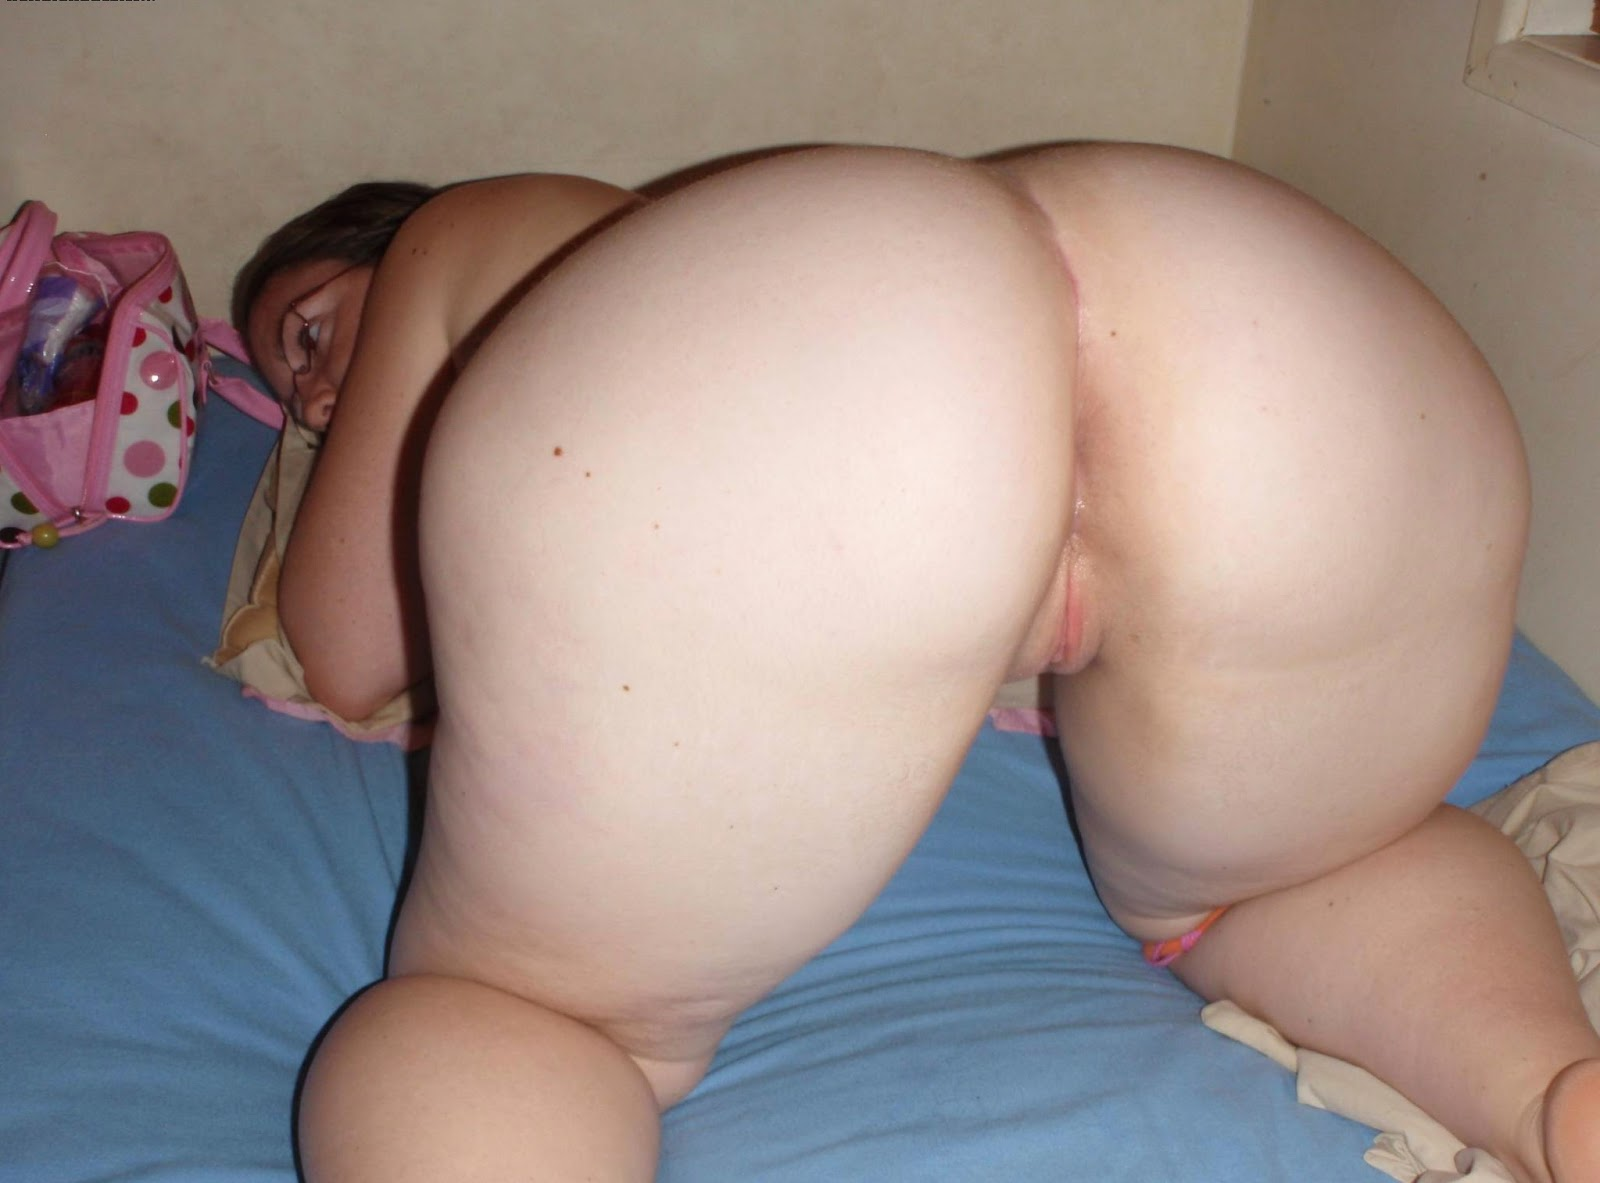 chubby with big tits and ass